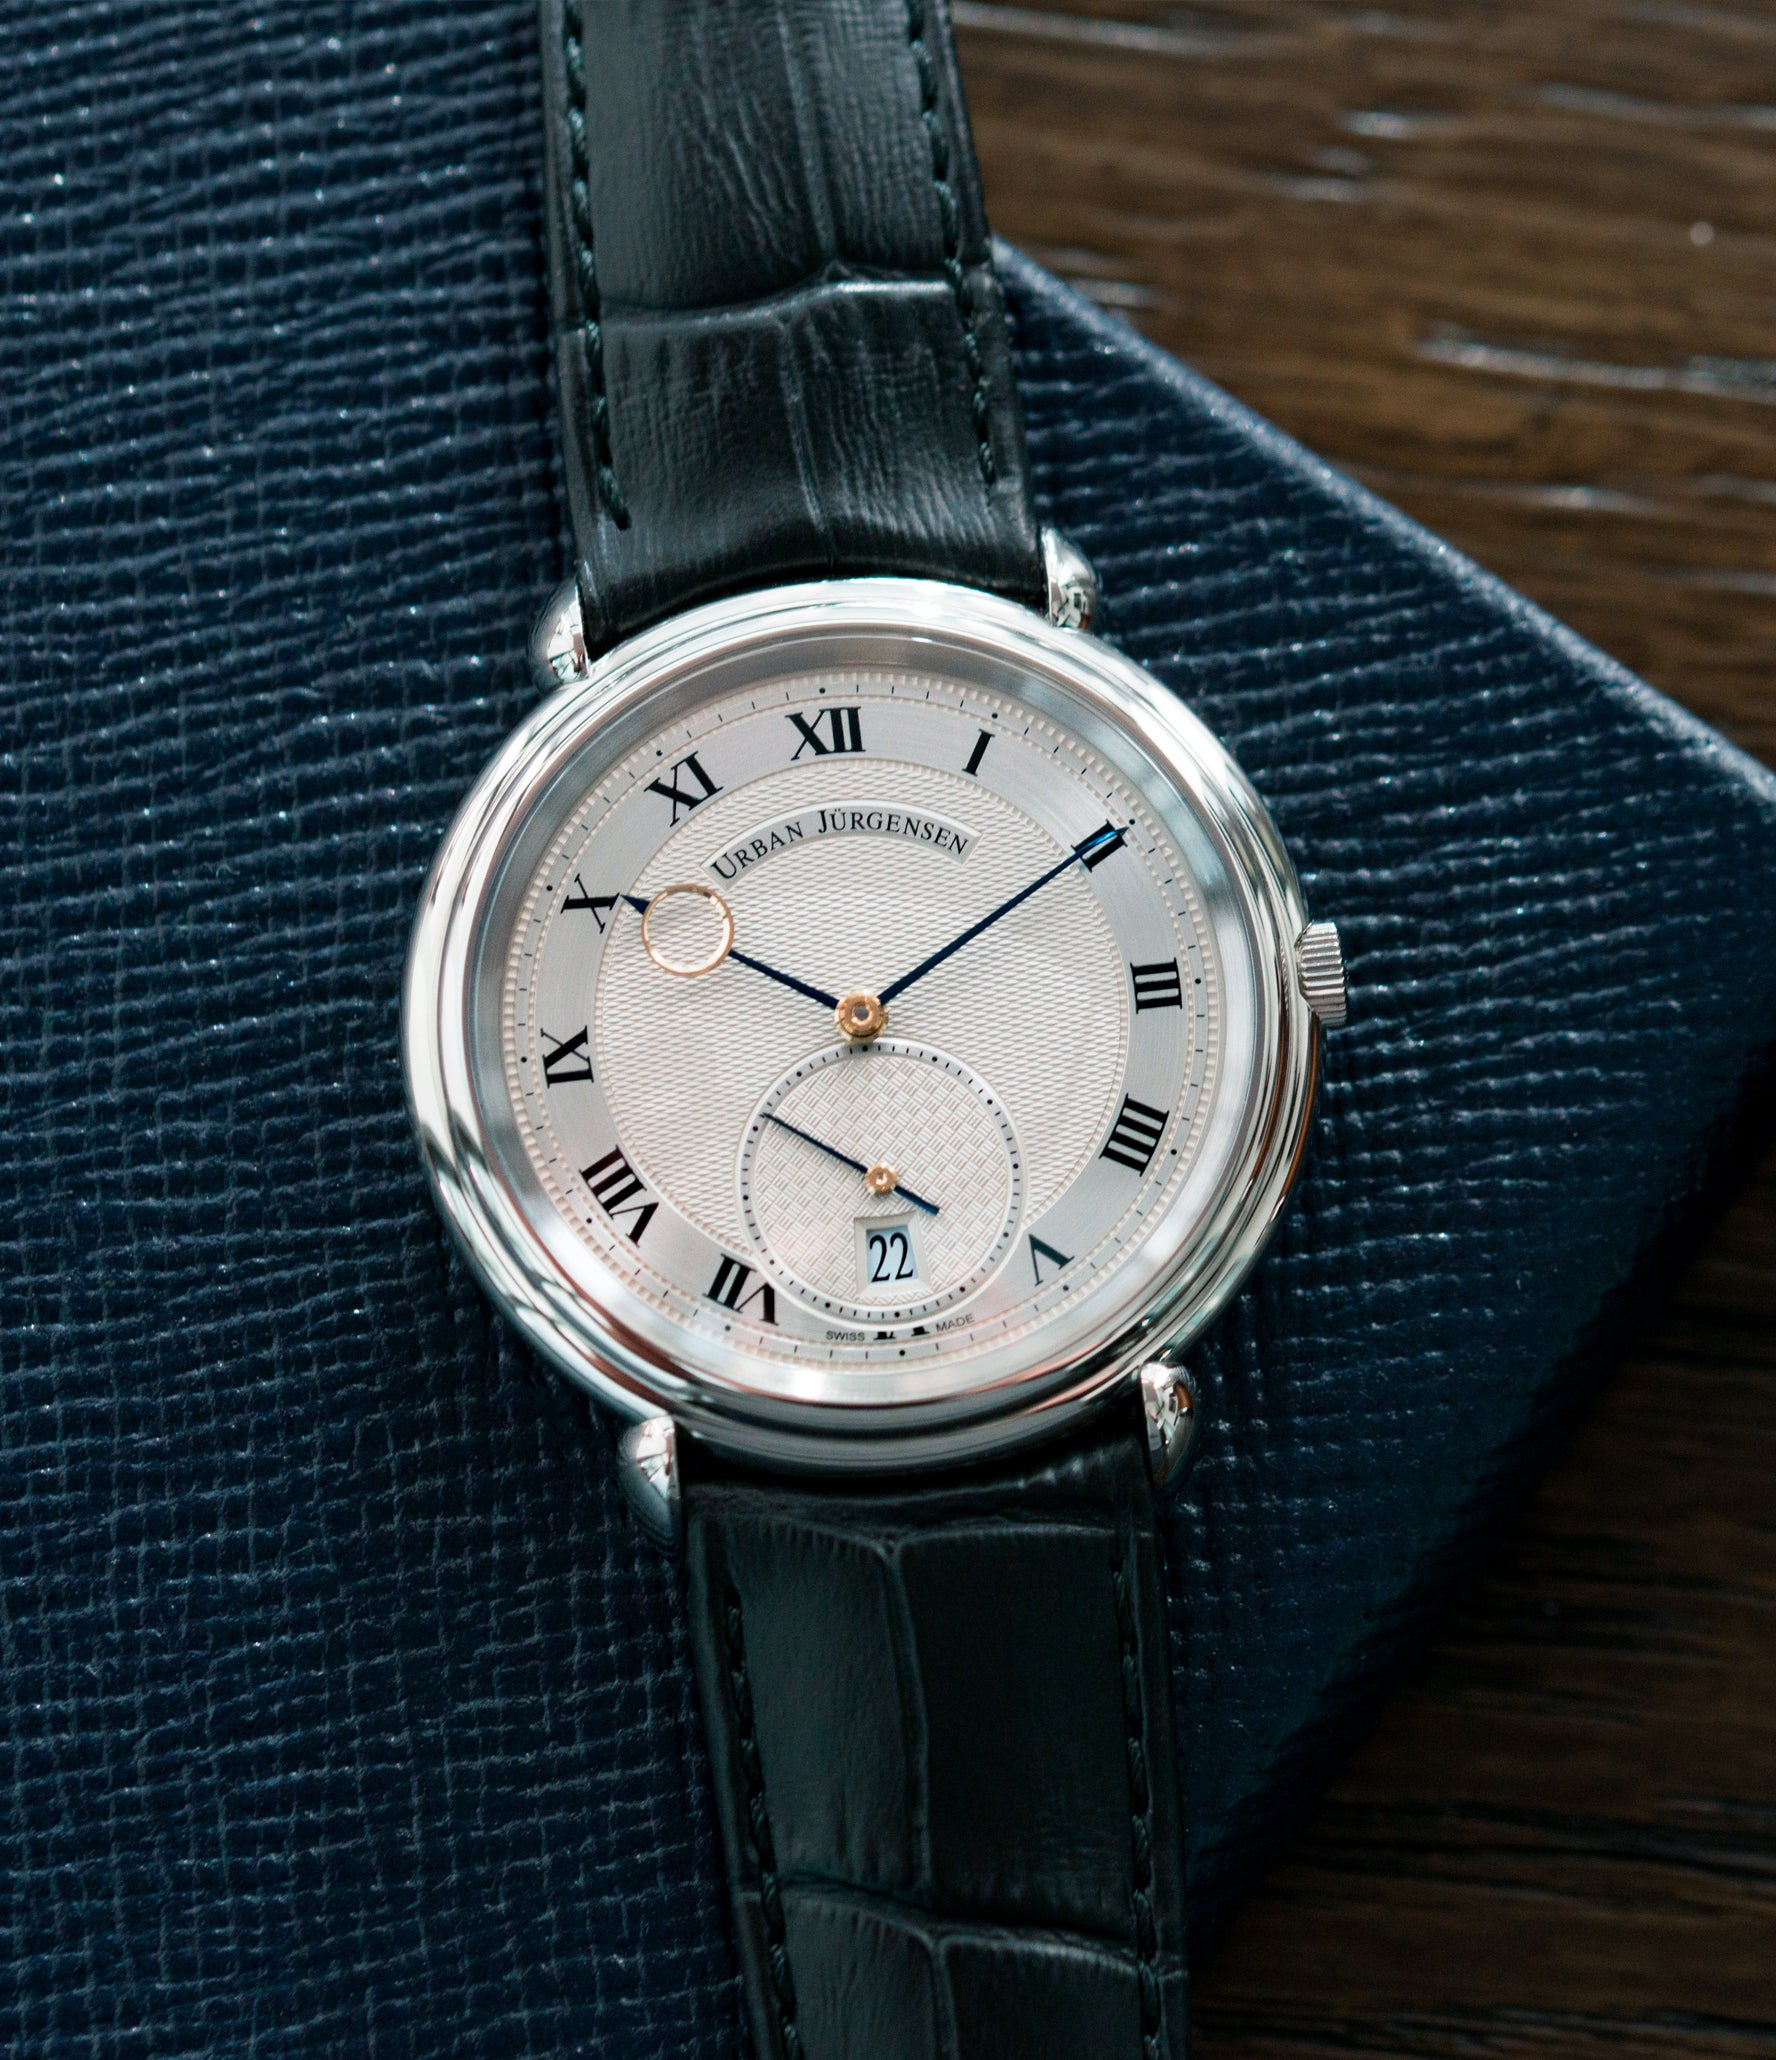 sell Urban Jurgensen Big8 steel watch online at A Collected Man London specialist retailer of independent watchamkers